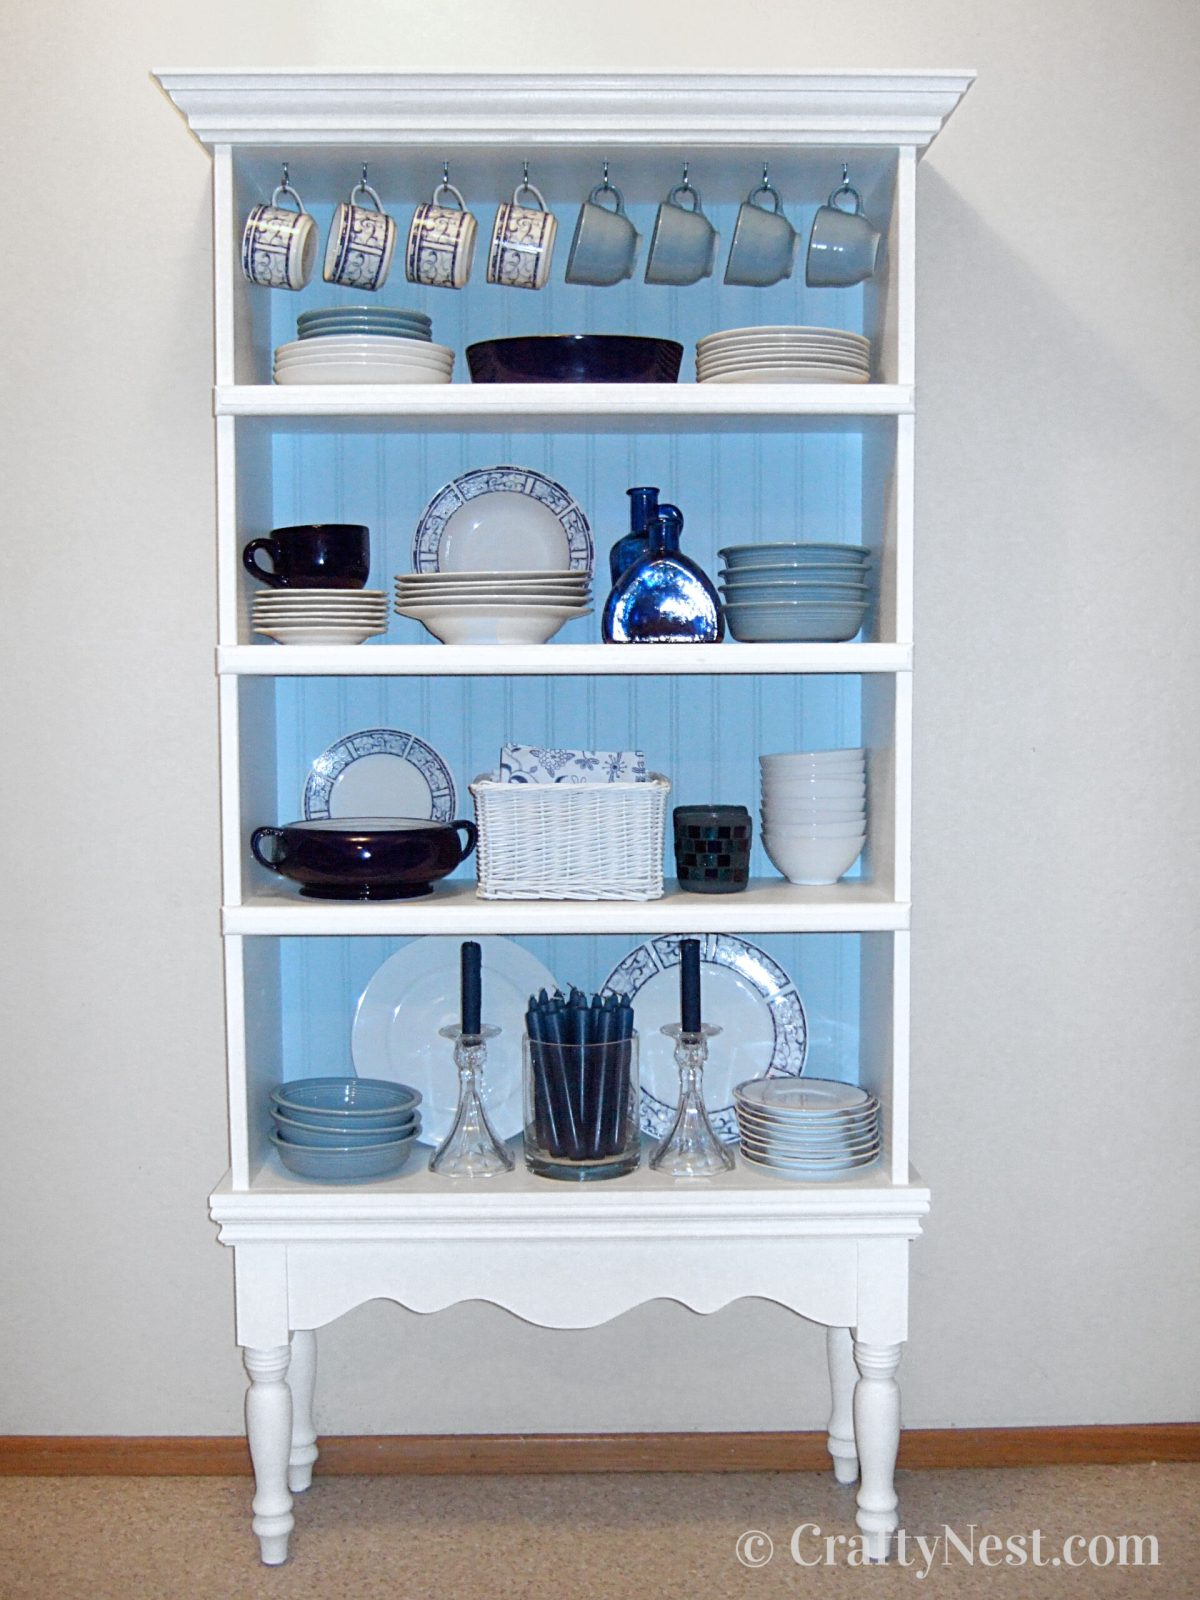 Fancy bookshelf with dishes, photo